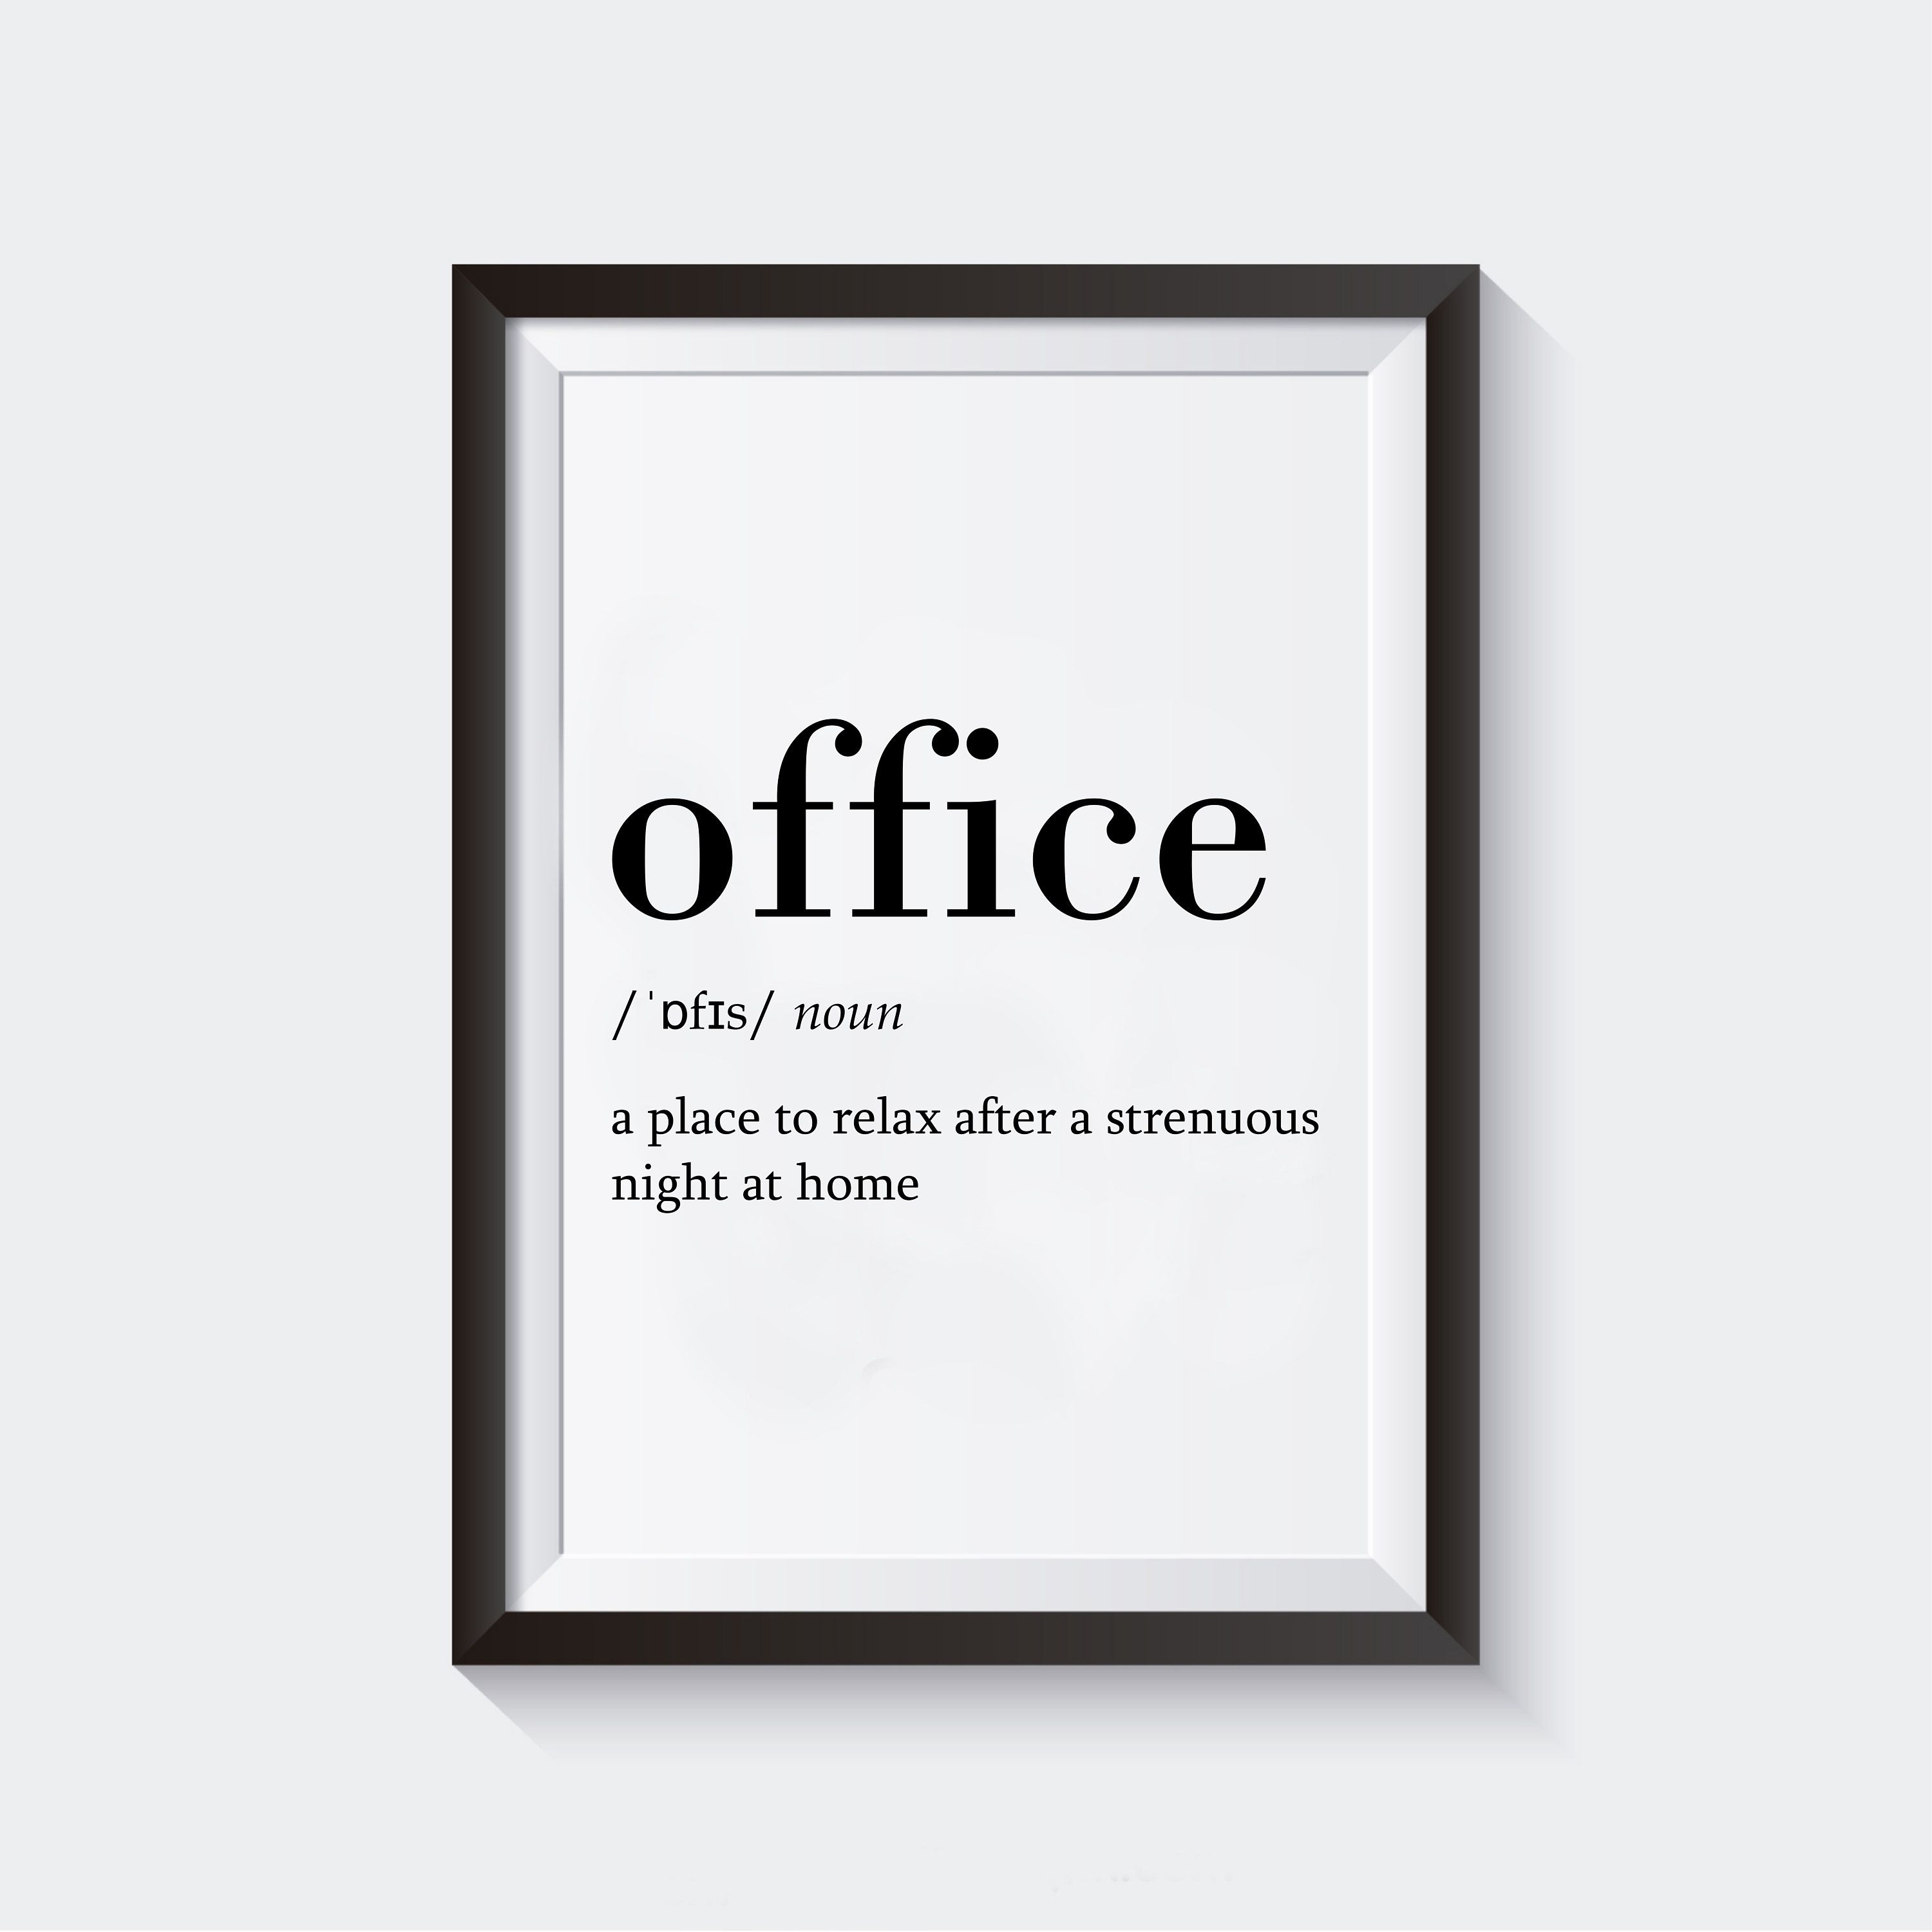 Funny Definition Art Etsy Ce Wall Art Office Printables Office Decor Prints For Office Funny Quotes Prin Funny Quote Prints Quote Prints Office Wall Art